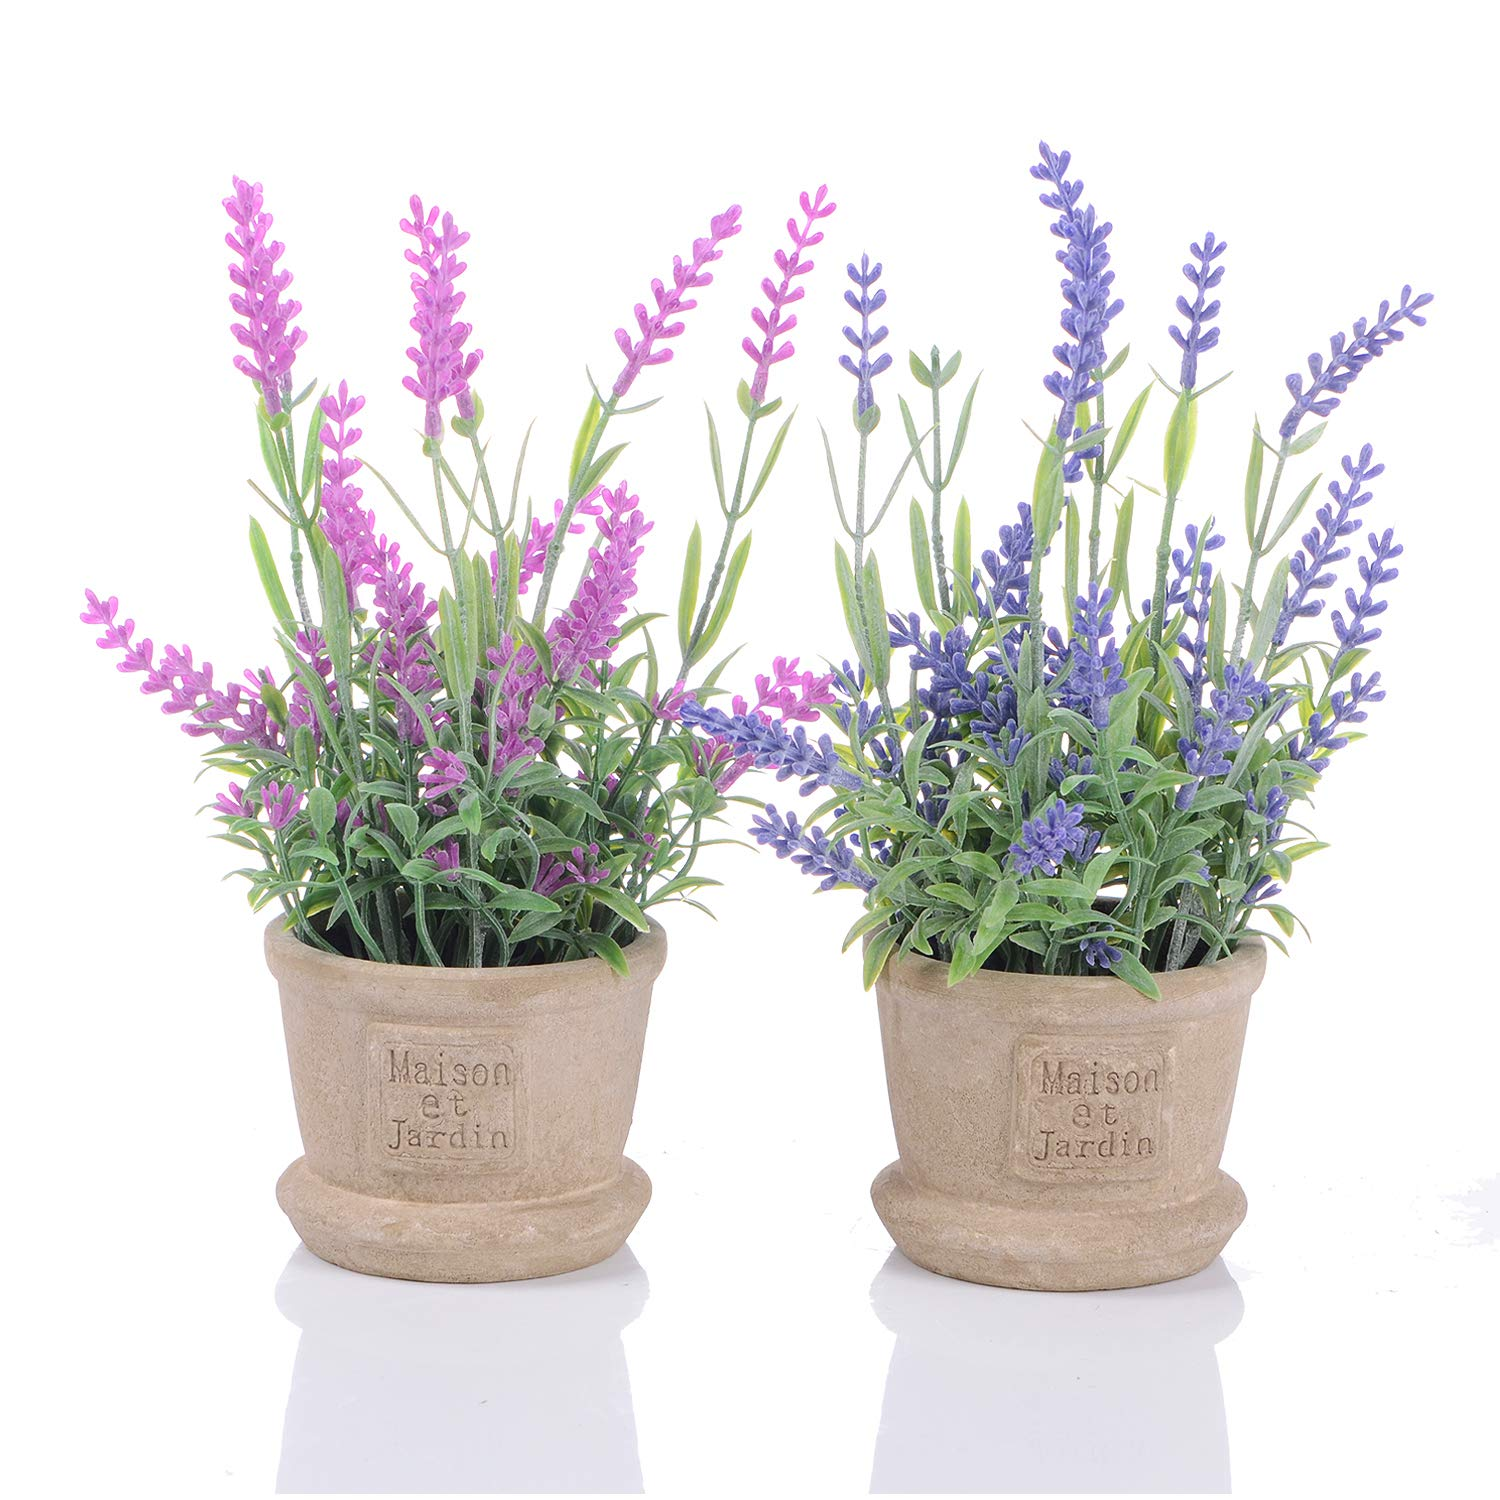 YQing Lavender Artificial Flower Pot - 2 Pack Fake Potted Plants with Decorative Fake Lavender Flowers for House Decorations(Pink and Purple) Amazon.co.uk ...  sc 1 st  Amazon UK : flower pot decorations - startupinsights.org